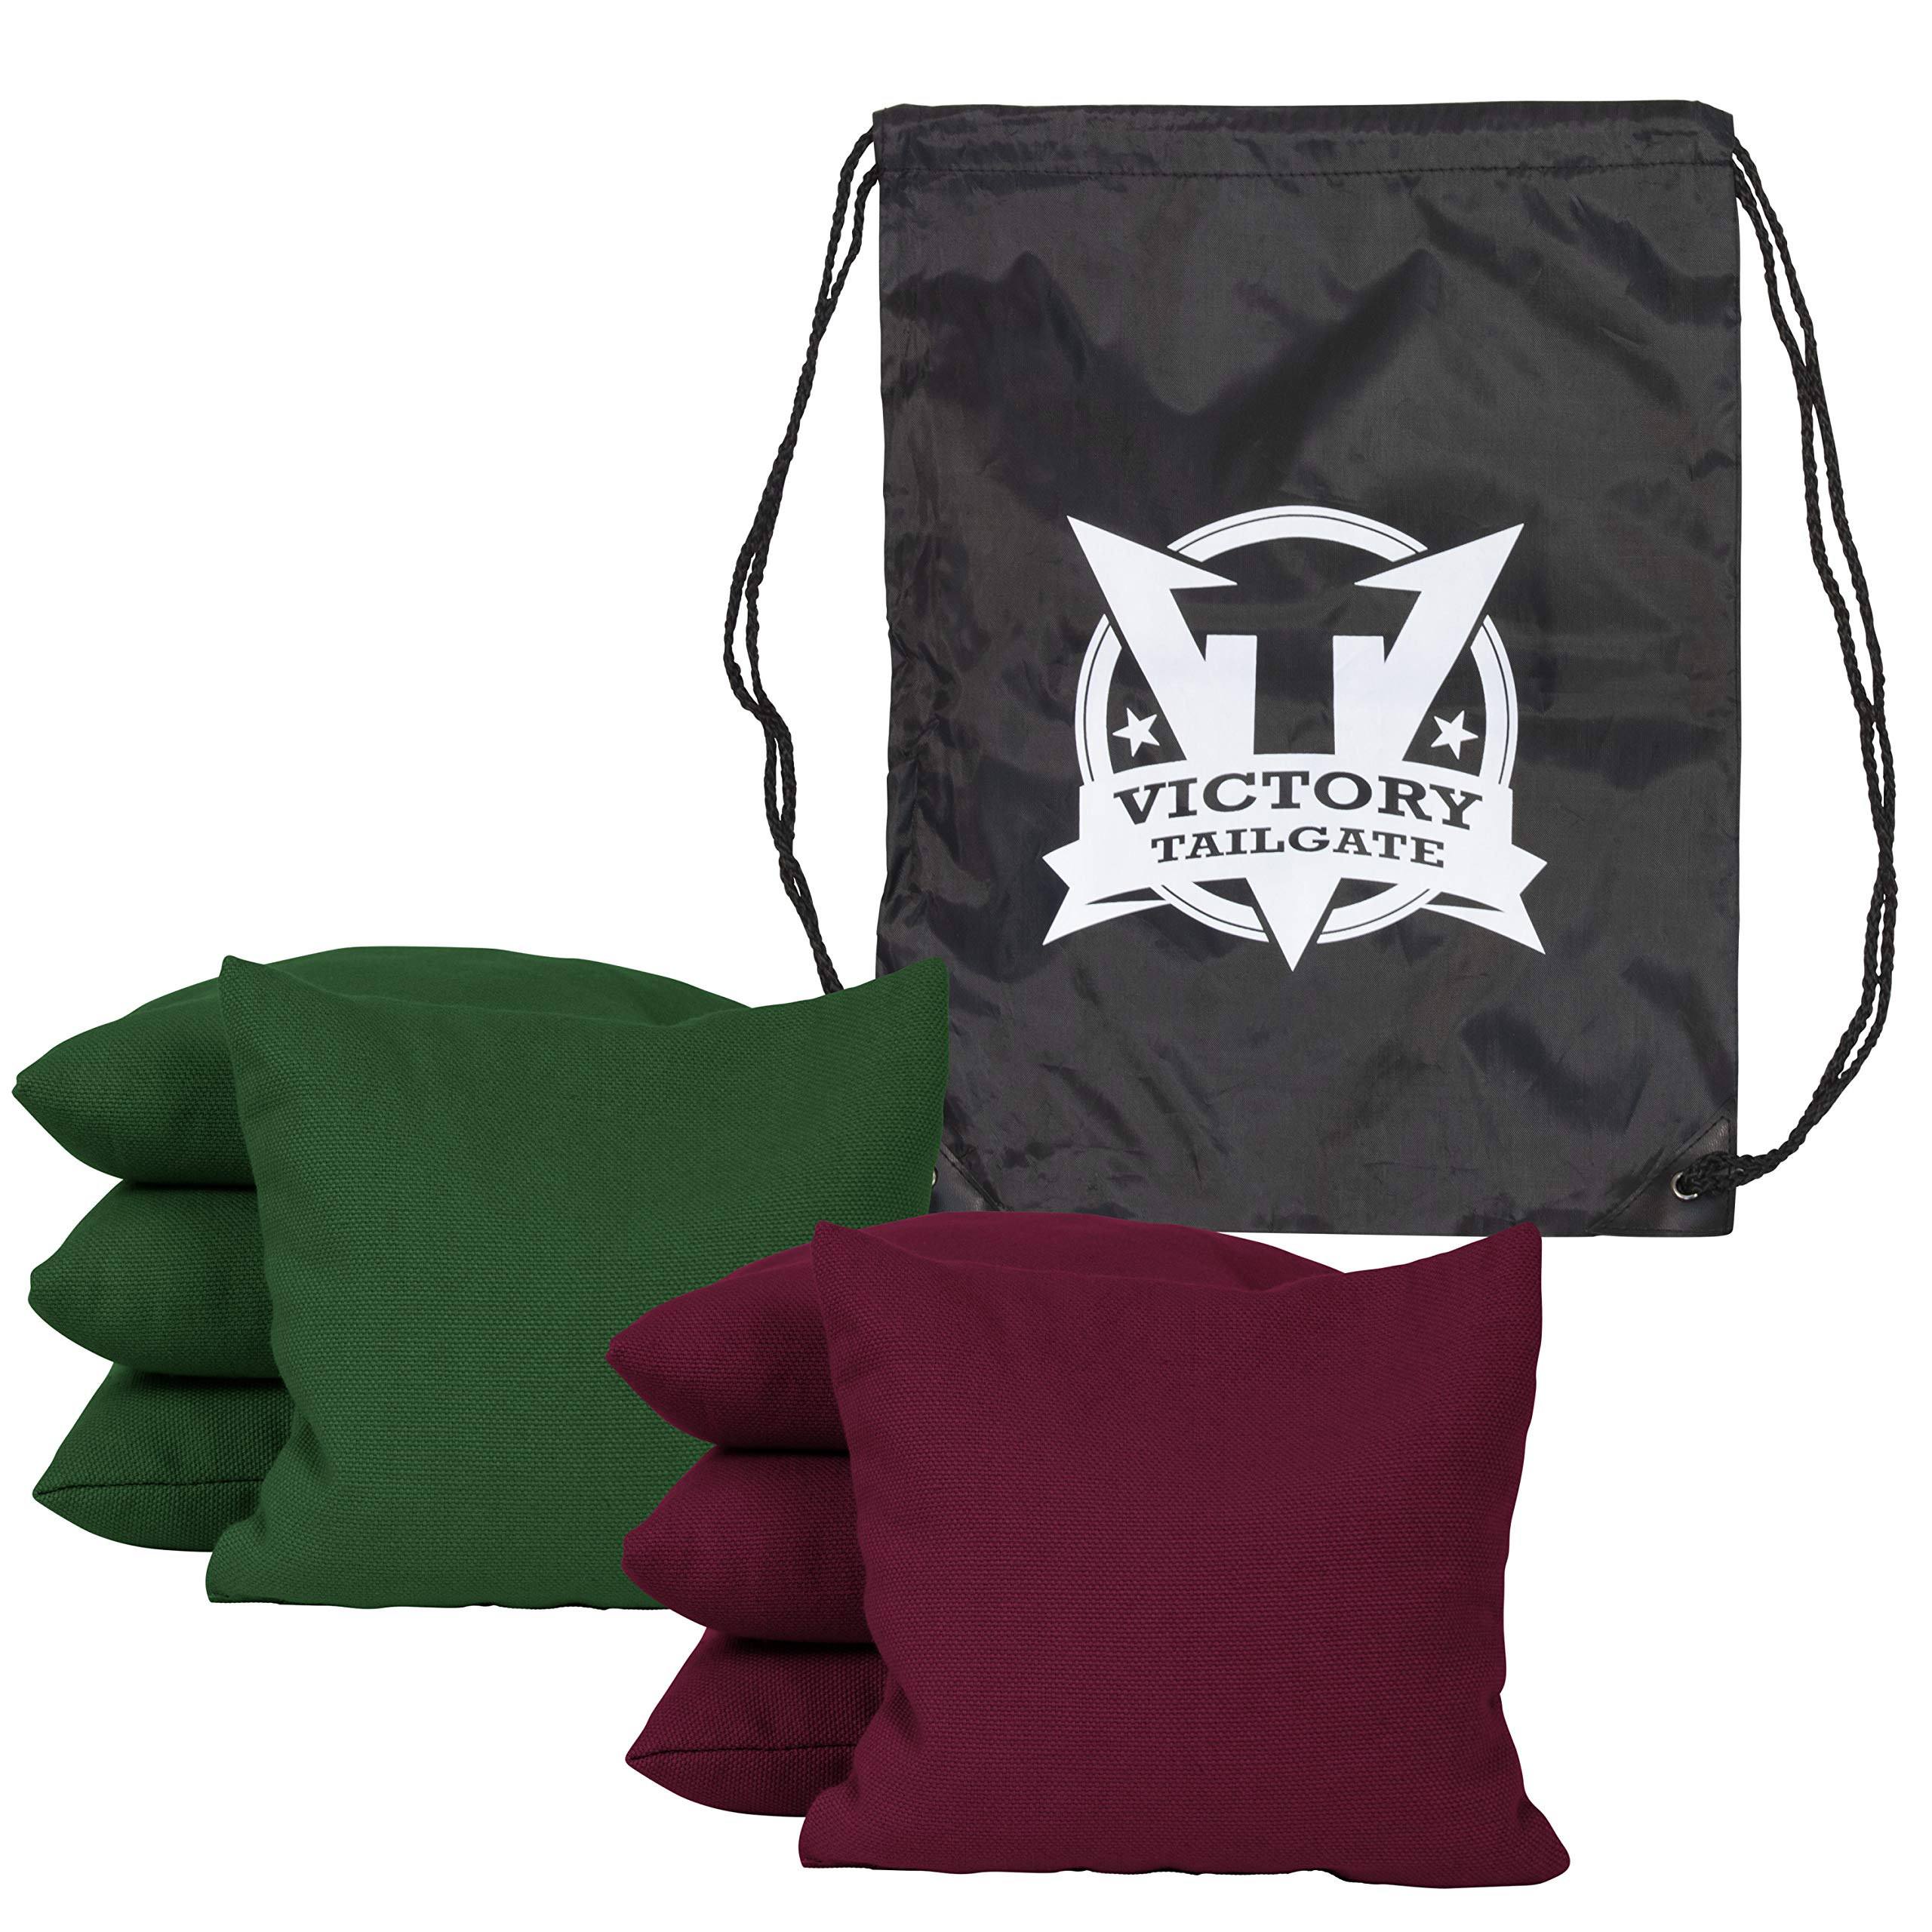 Victory Tailgate 8 Colored Corn Filled Regulation Cornhole Bags with Drawstring Pack (4 Burgundy, 4 Hunter Green)